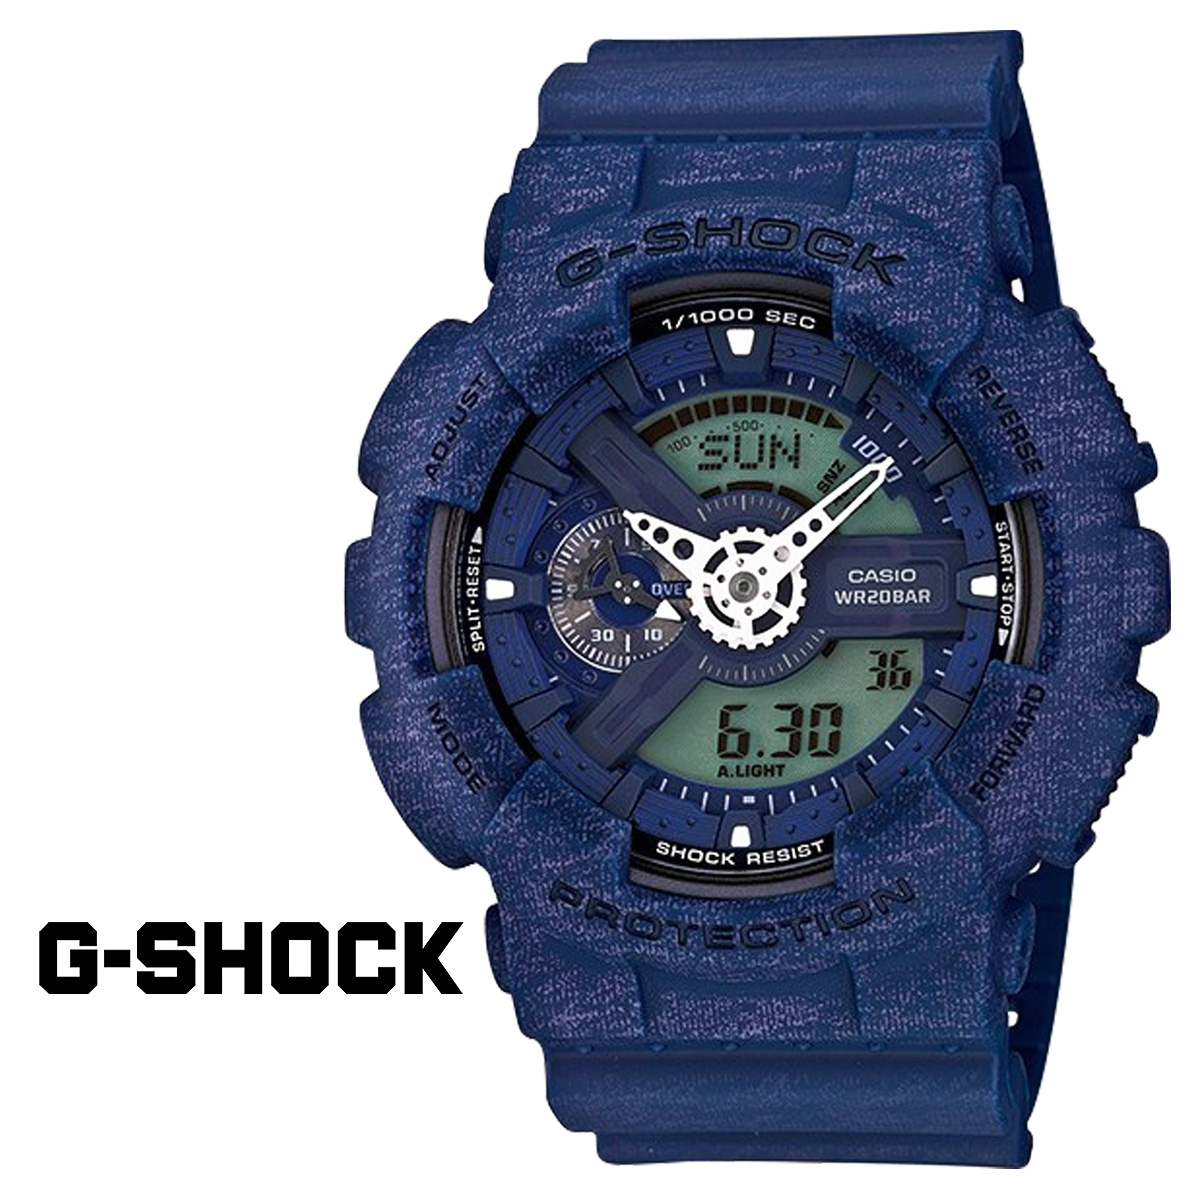 whats up sports rakuten global market casio casio g shock watch casio casio g shock watch ga 110ht 2ajf heathered color series g shock